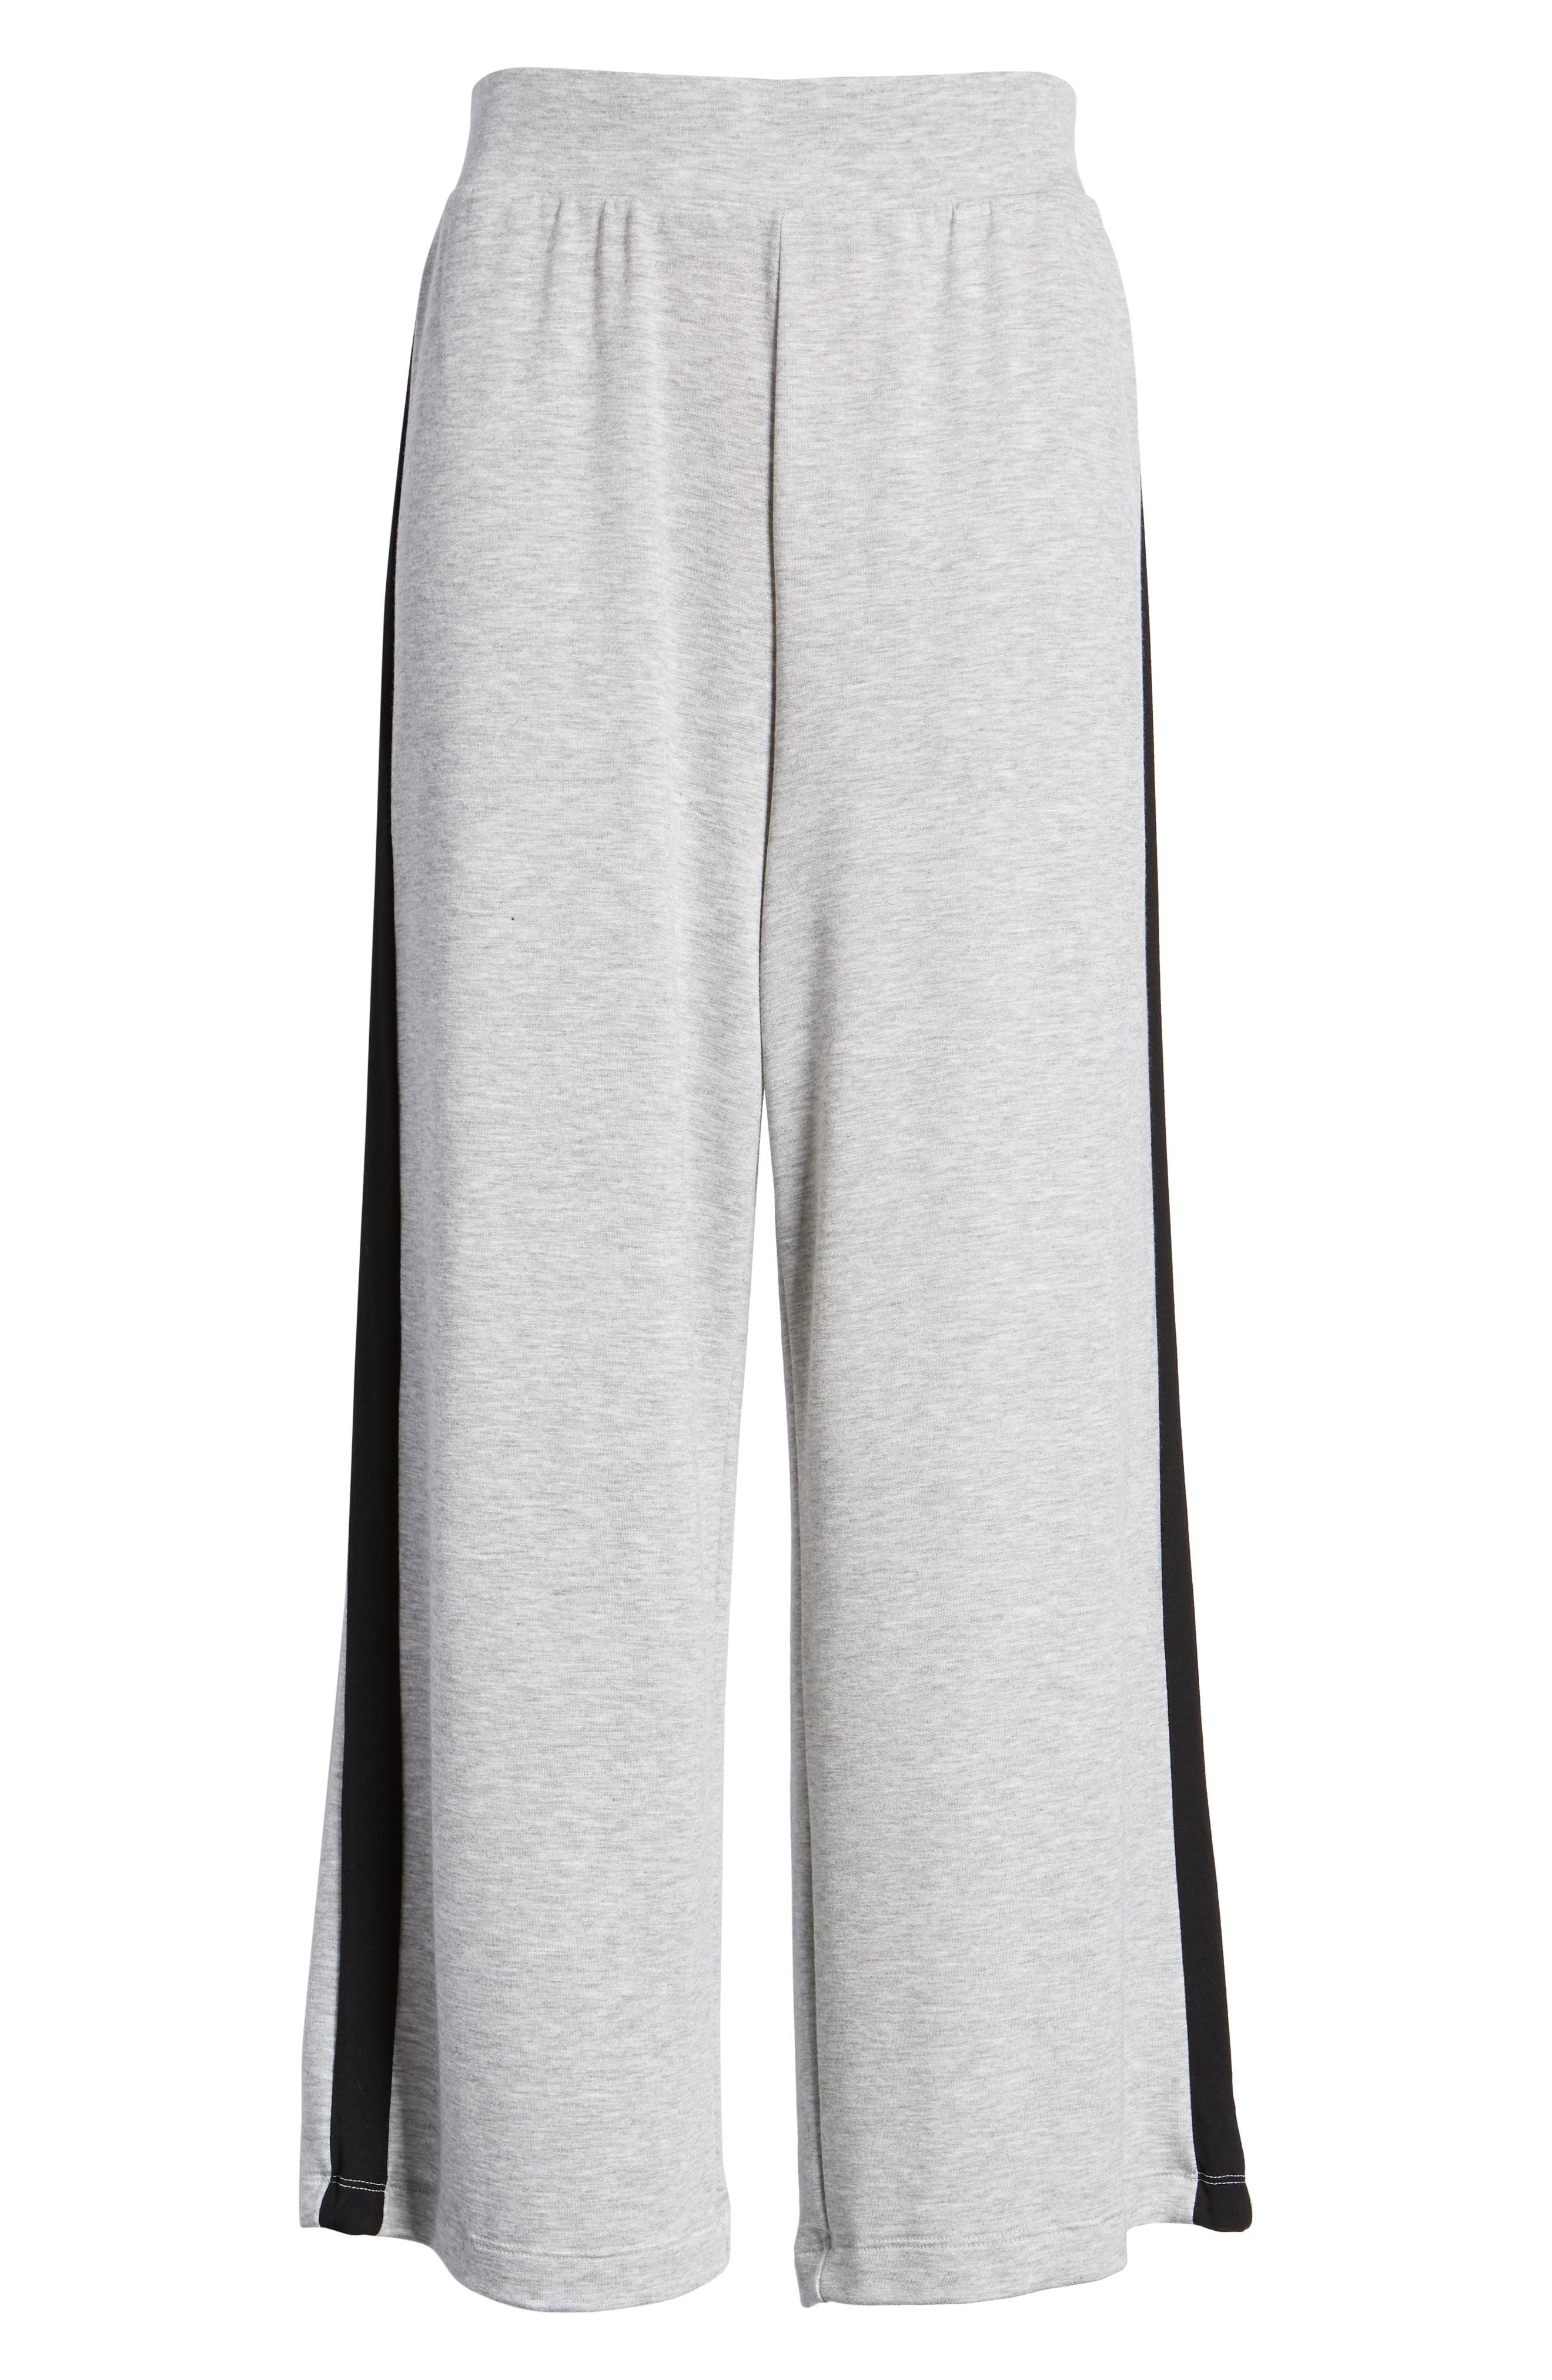 Sporty Wide Leg Crop Pants,                             Alternate thumbnail 6, color,                             GREY PEARL HEATHER